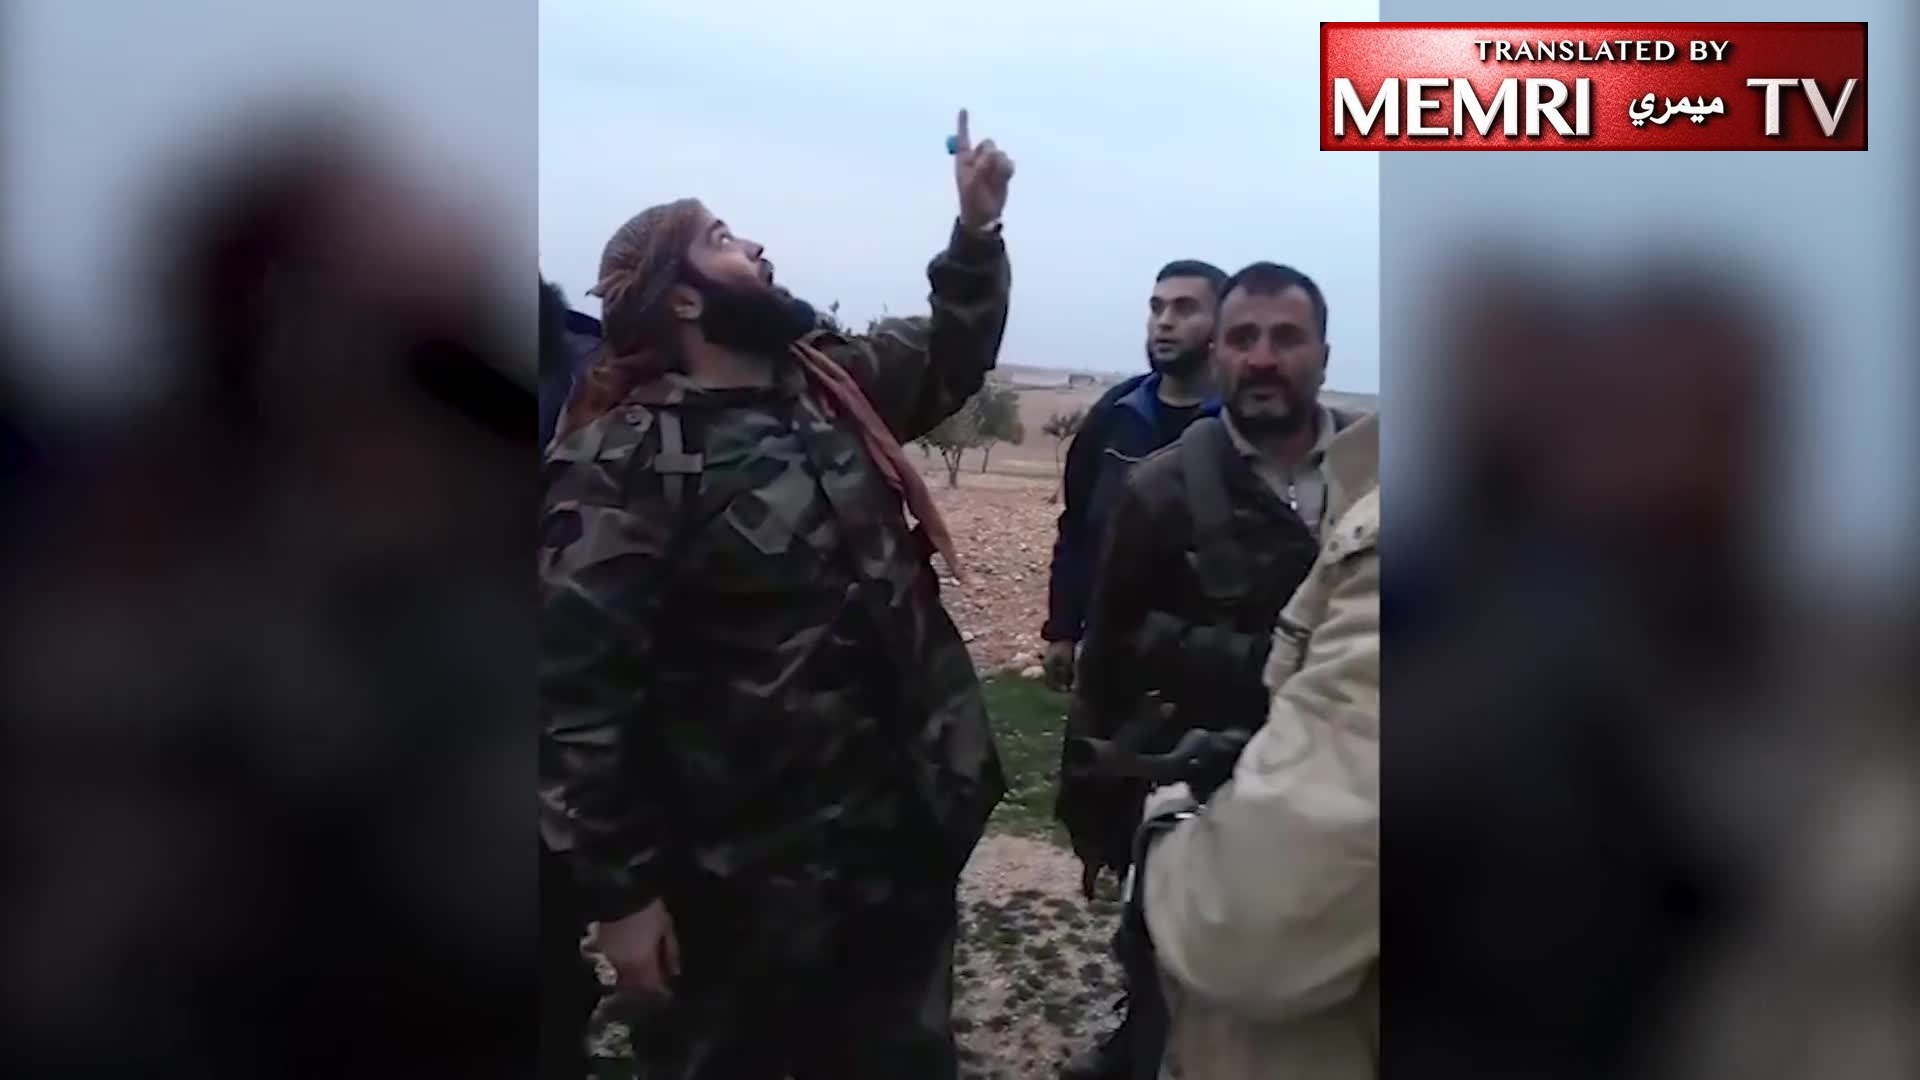 Syria-Based Jihadi Cleric 'Abdallah Al-Muhaysini Celebrates Downing Of Russian Fighter Jet In Idlib